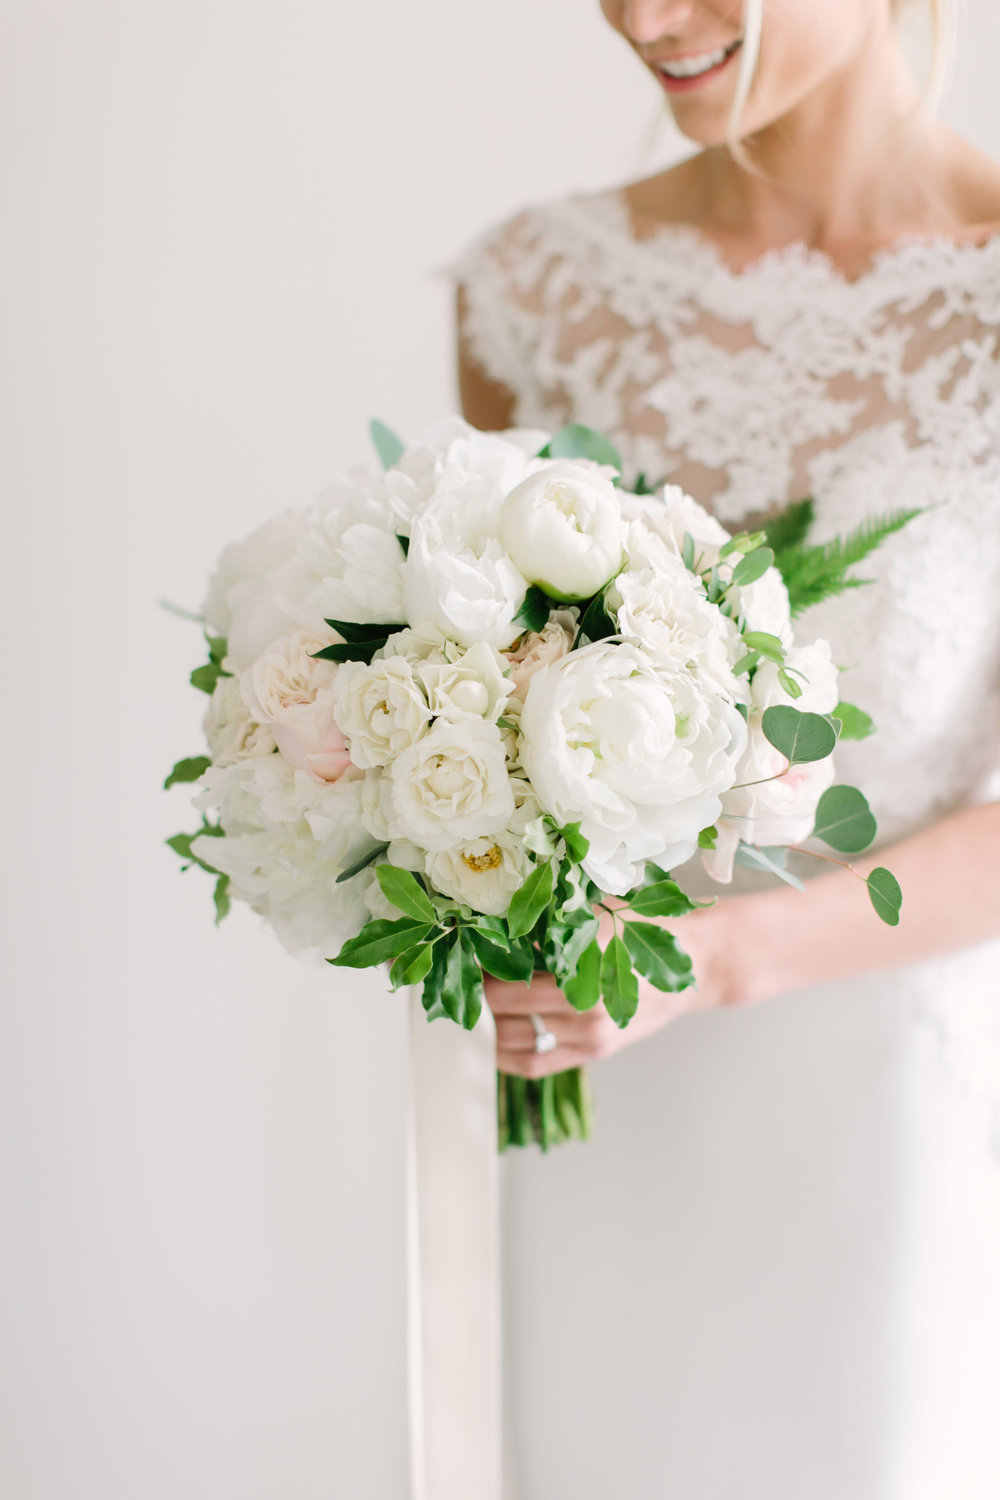 Bridal bouquet with white peonies